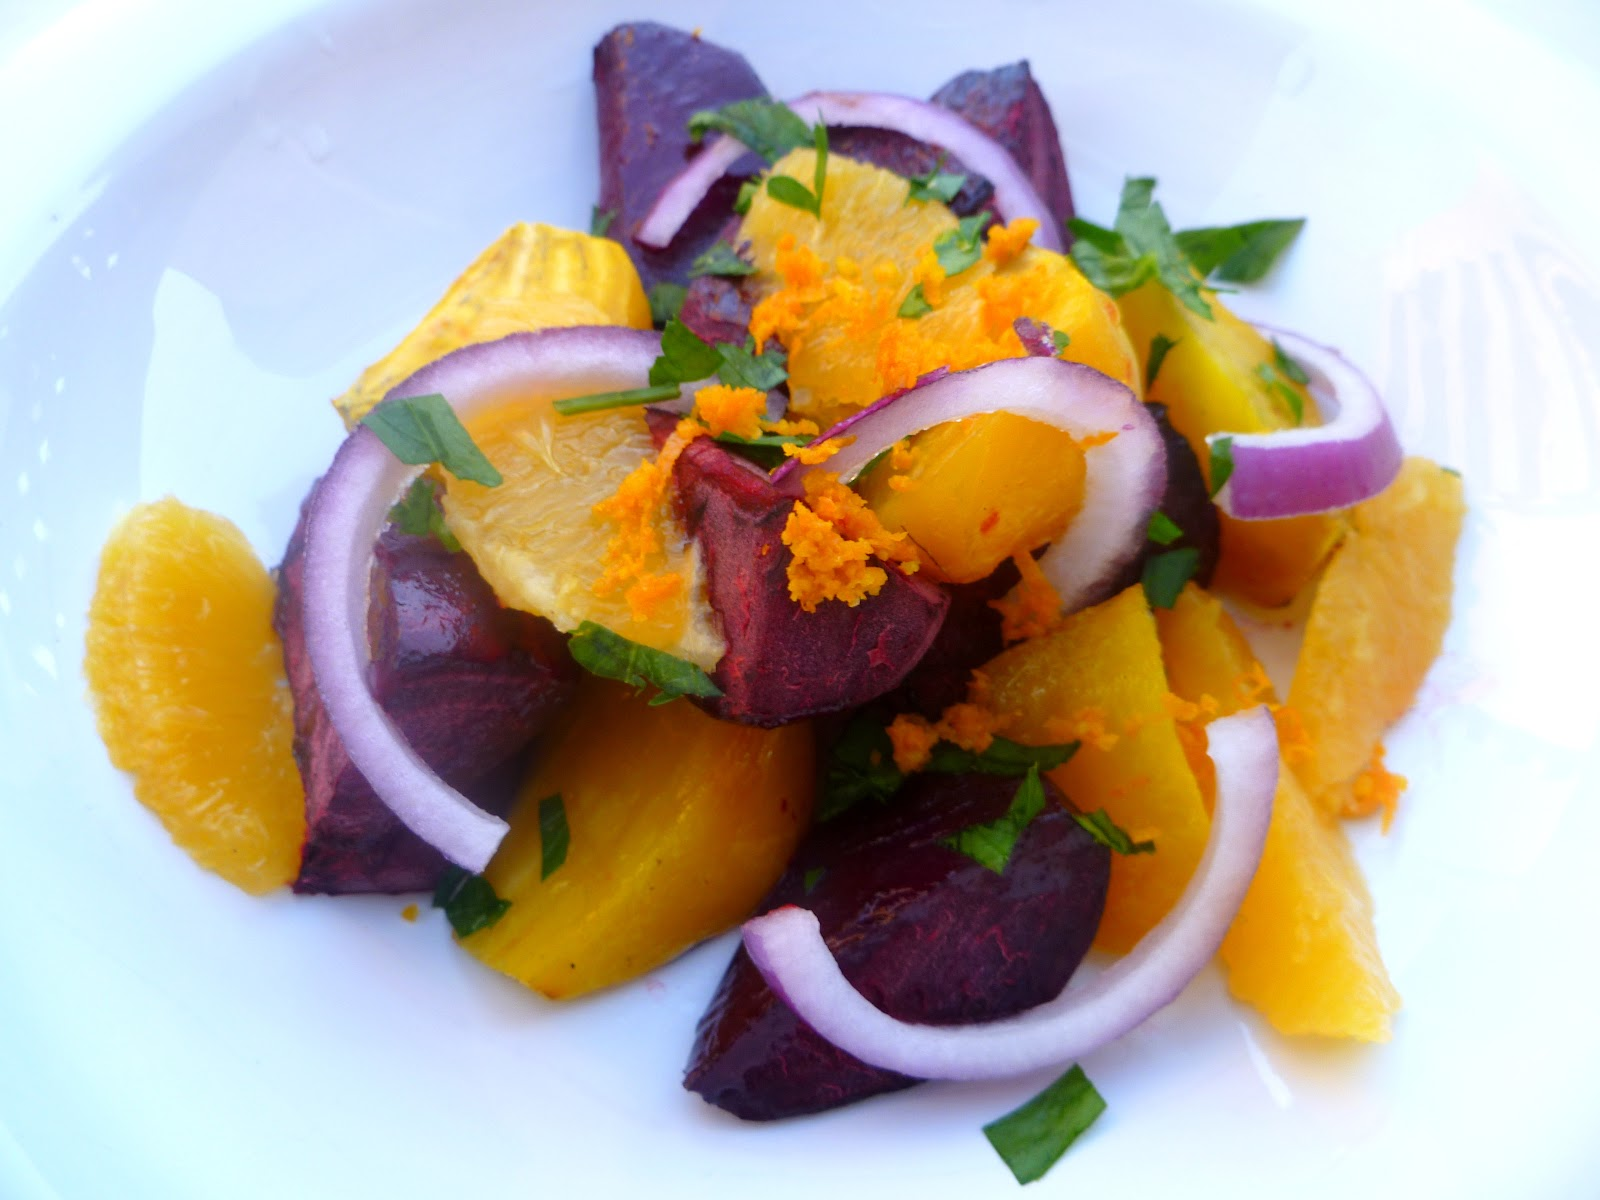 ... Gourmet Student: Red and Golden Beet Salad with Red Onions and Oranges